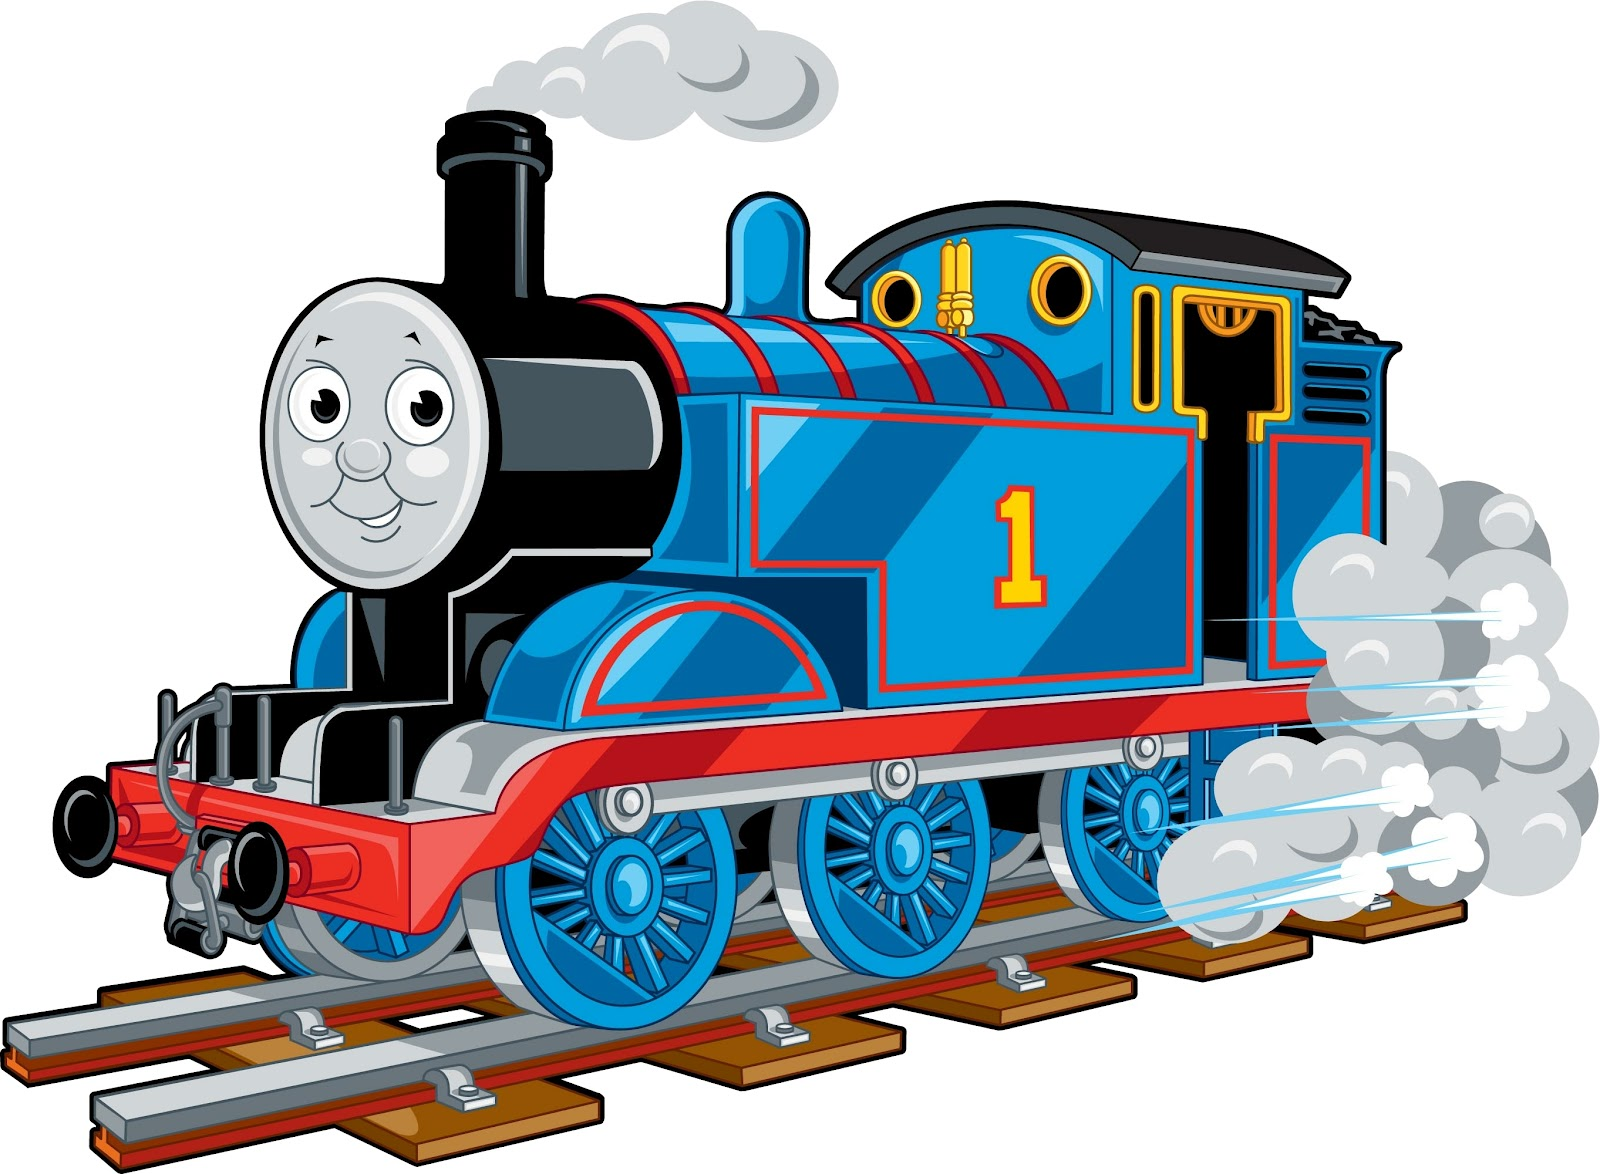 thomas kit completo com molduras para convites r tulos para rh pinterest co uk thomas the train clip art images thomas the train clipart black and white